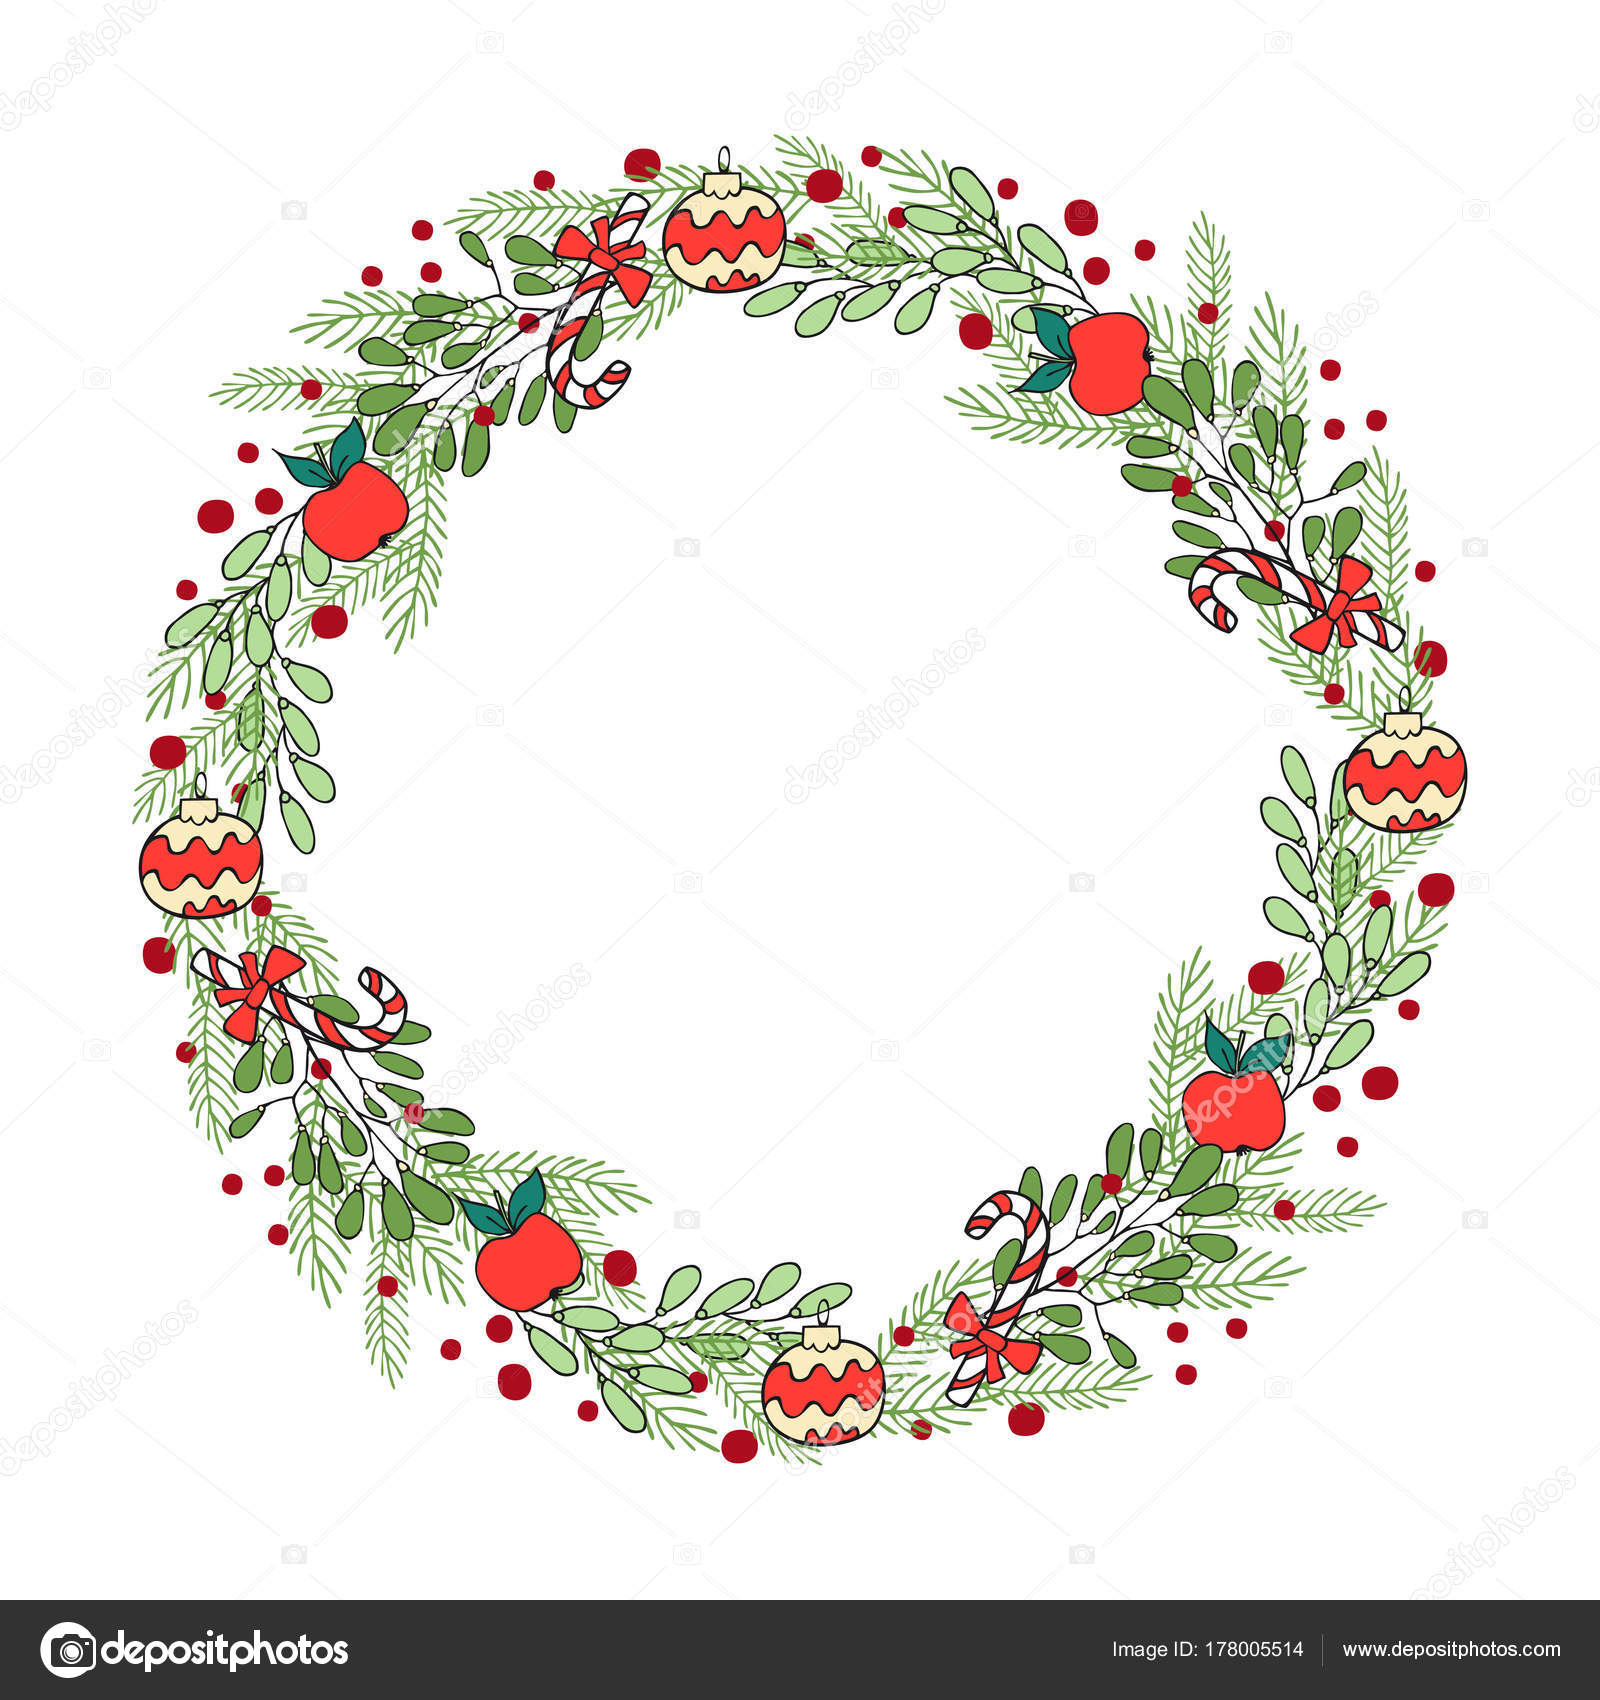 hand drawn winter holiday wreath a template of greeting card de